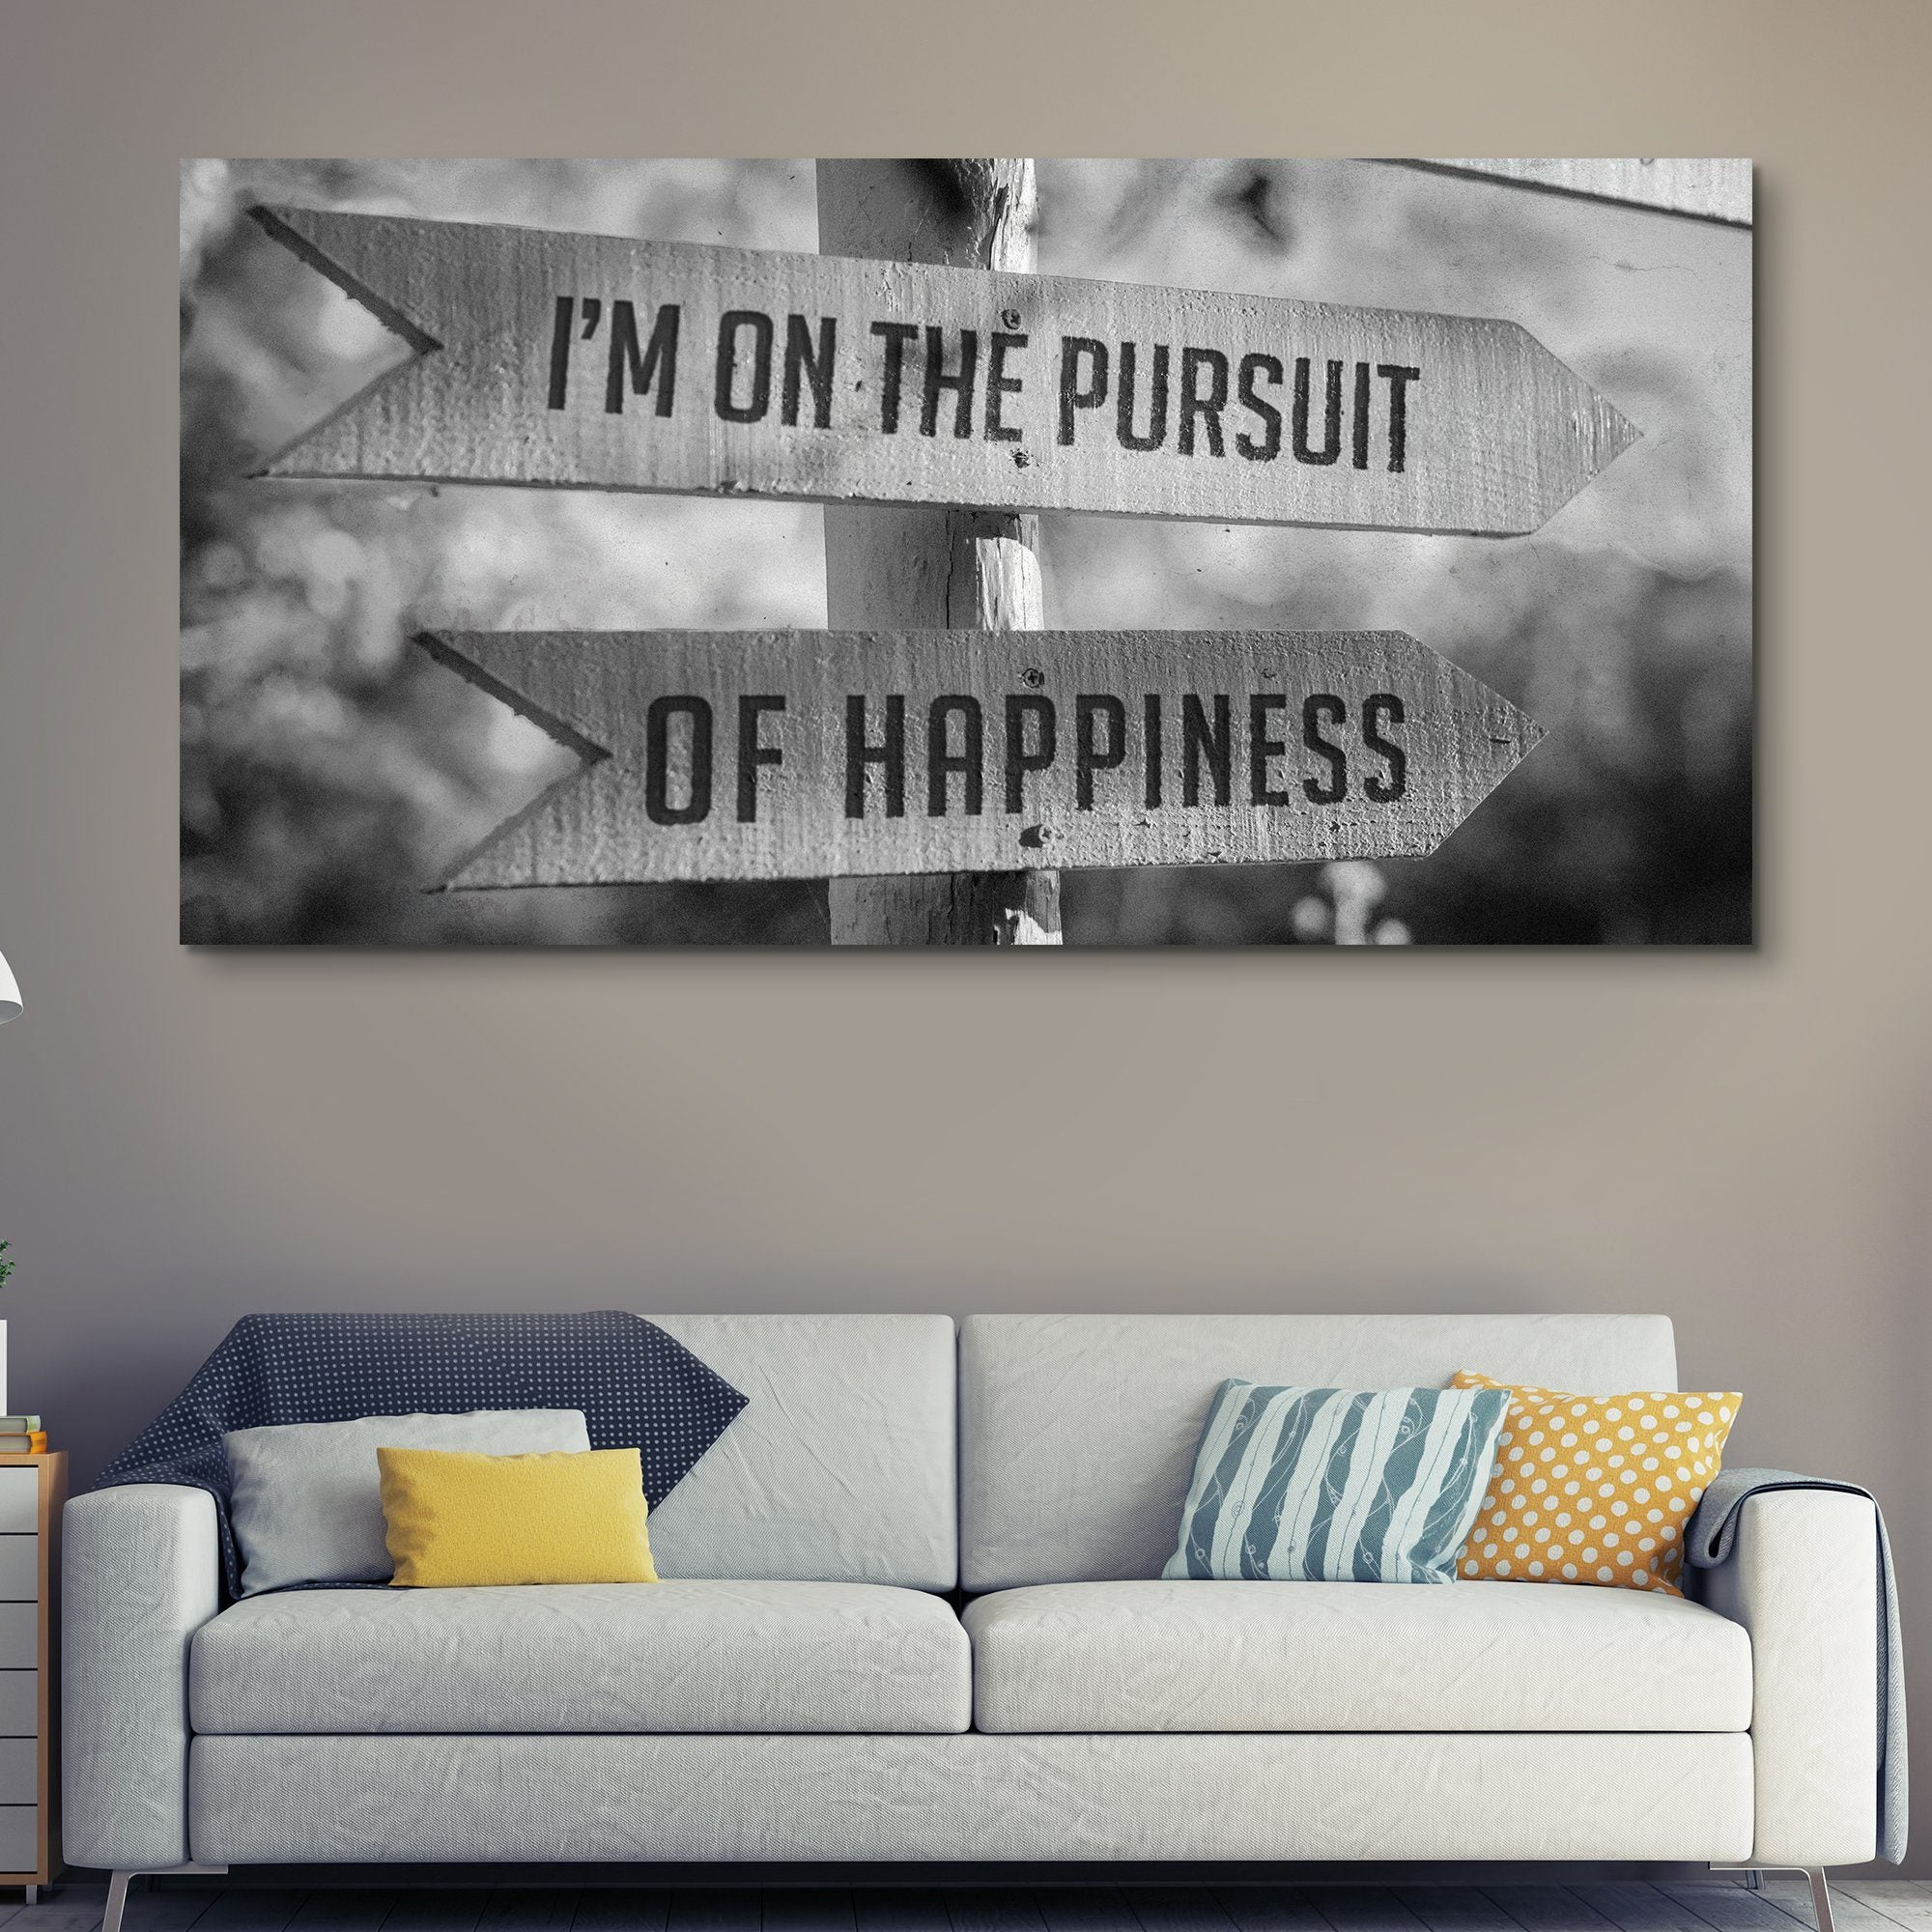 I'm On The Pursuit Of Happiness wall art